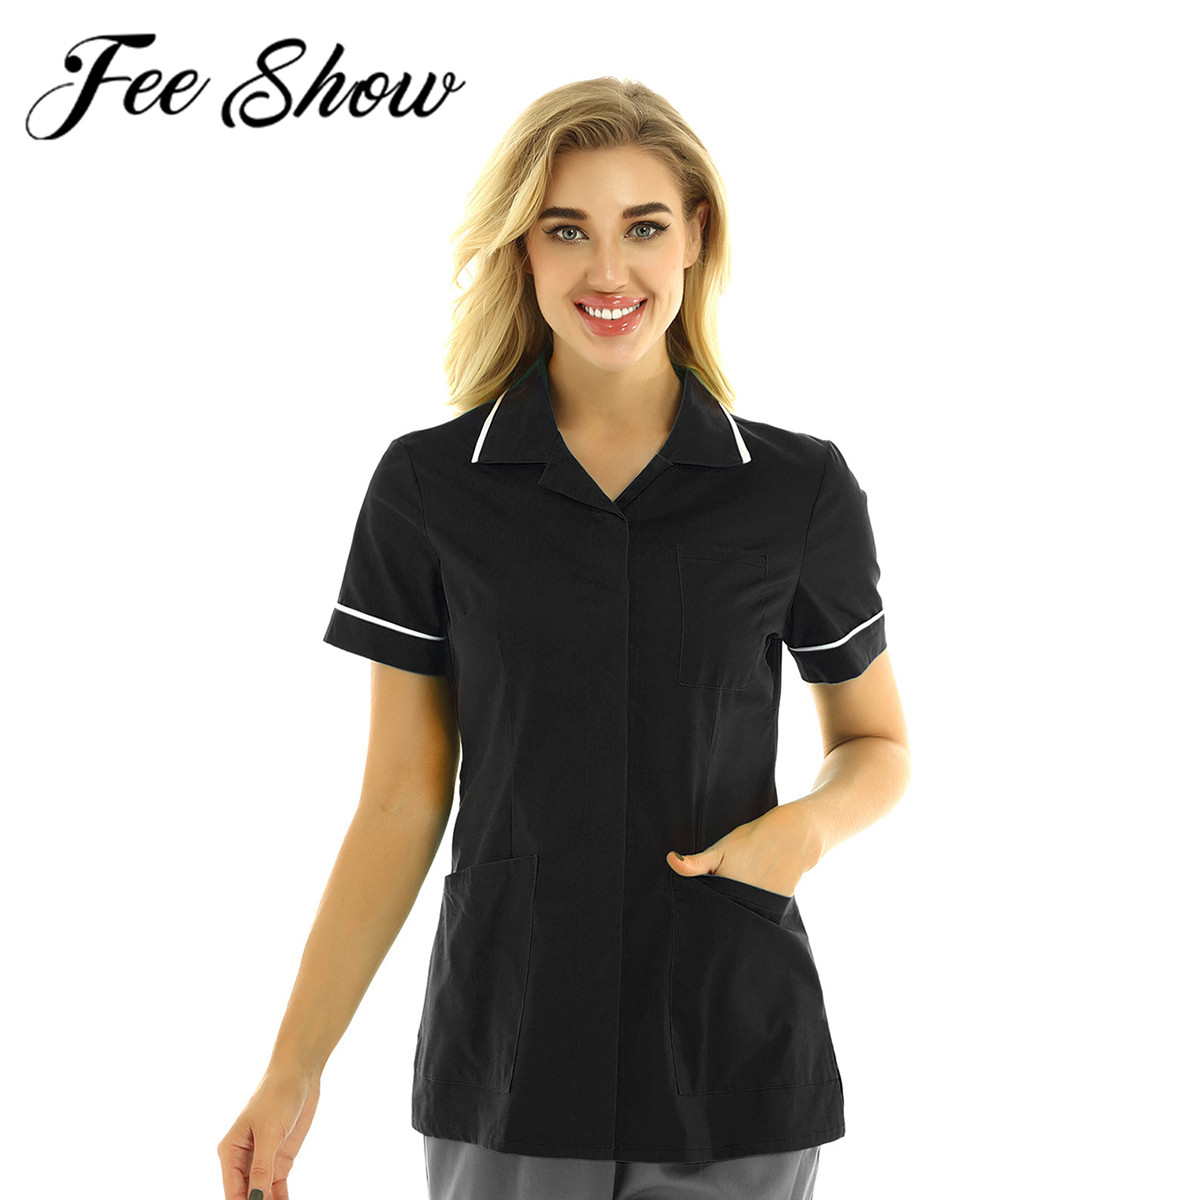 Medical Clothes Hospitality Care Uniform Dentist Workwear Doctor Nures Healthcare Tunic Nursing Maid Tops Surgical Gown Lab Coat